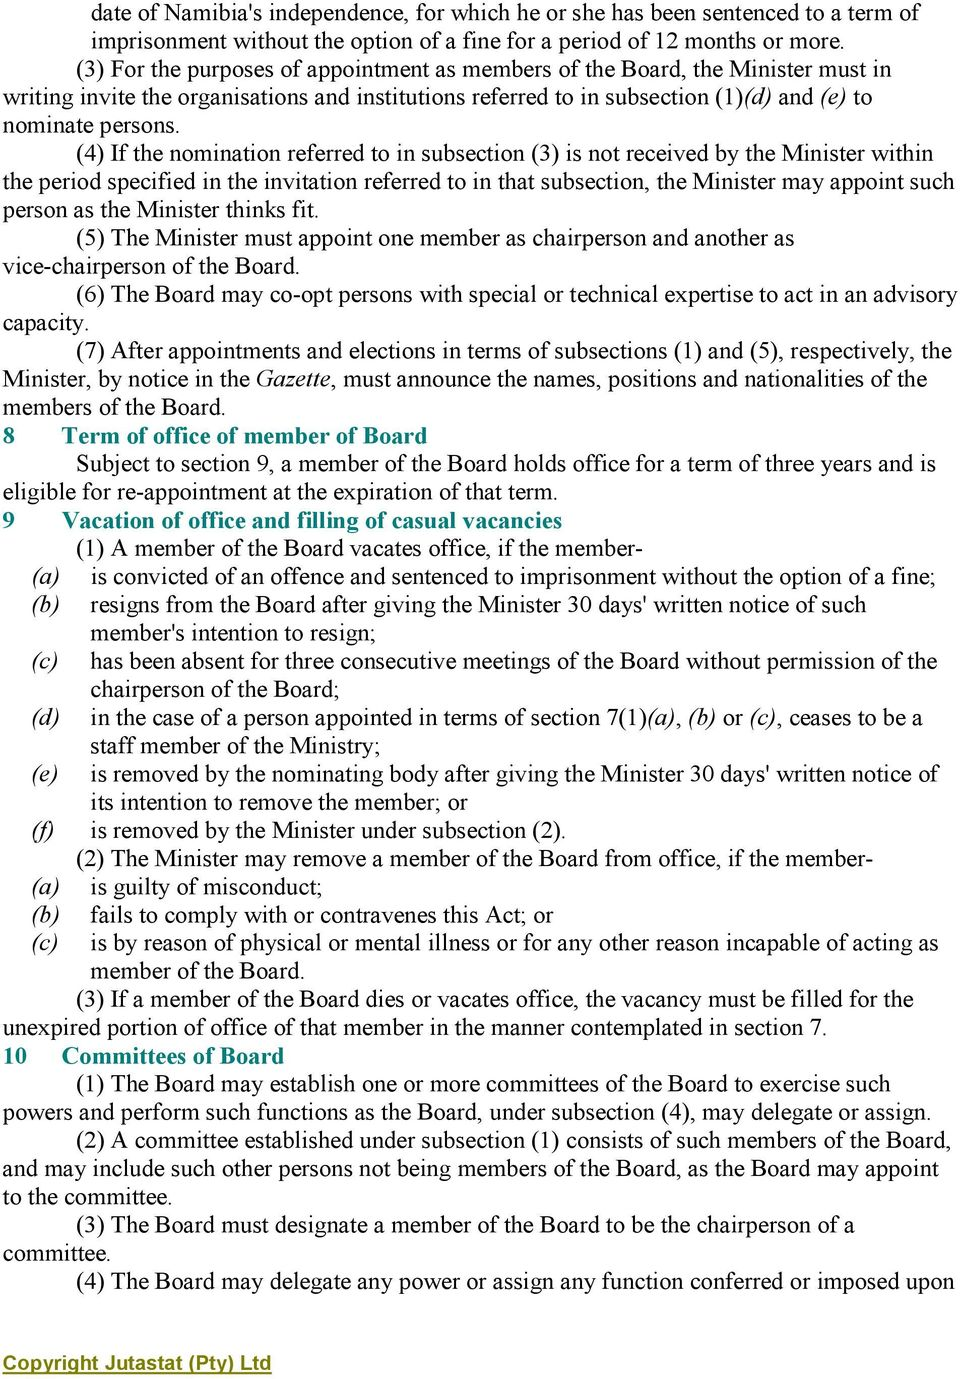 (4) If the nomination referred to in subsection (3) is not received by the Minister within the period specified in the invitation referred to in that subsection, the Minister may appoint such person